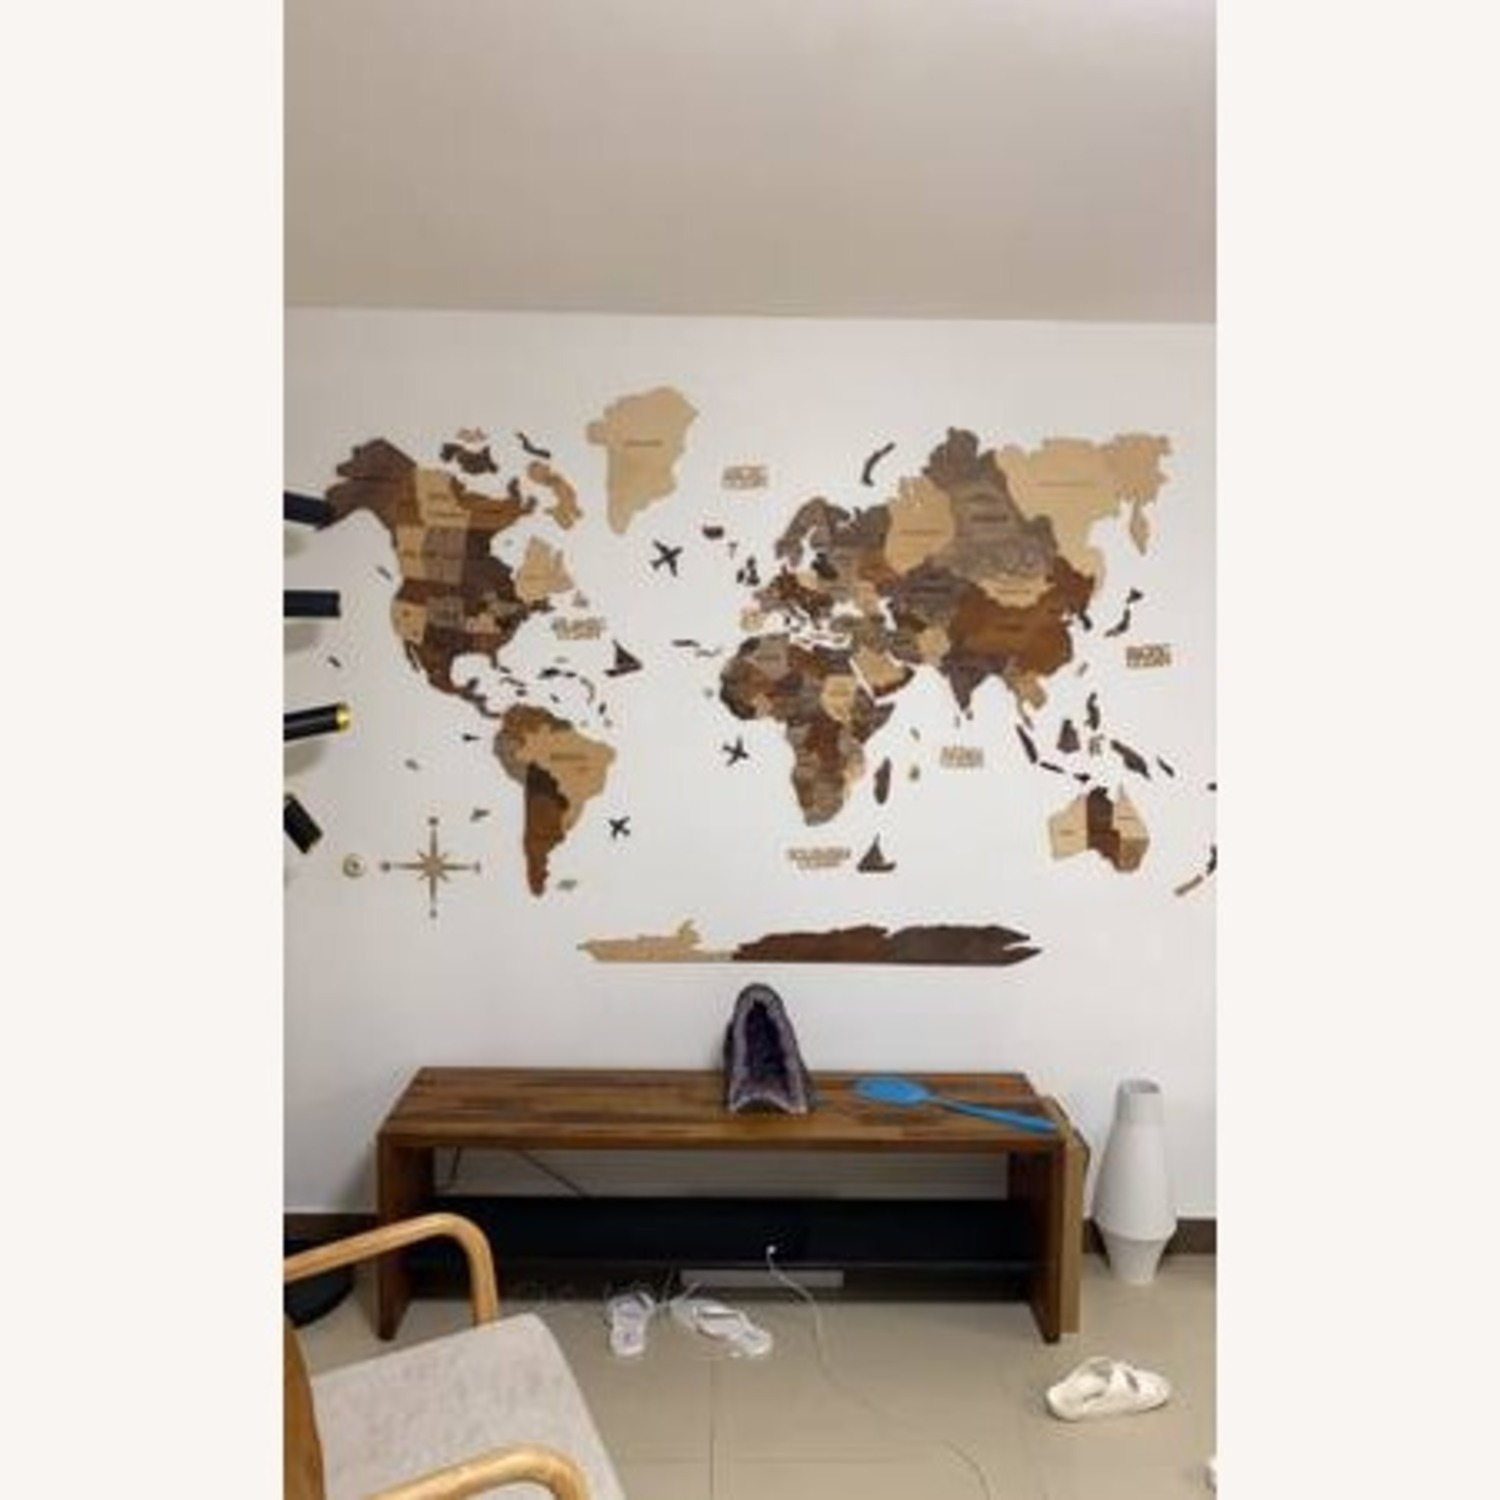 3D Wooden World Map Multicolor - image-2